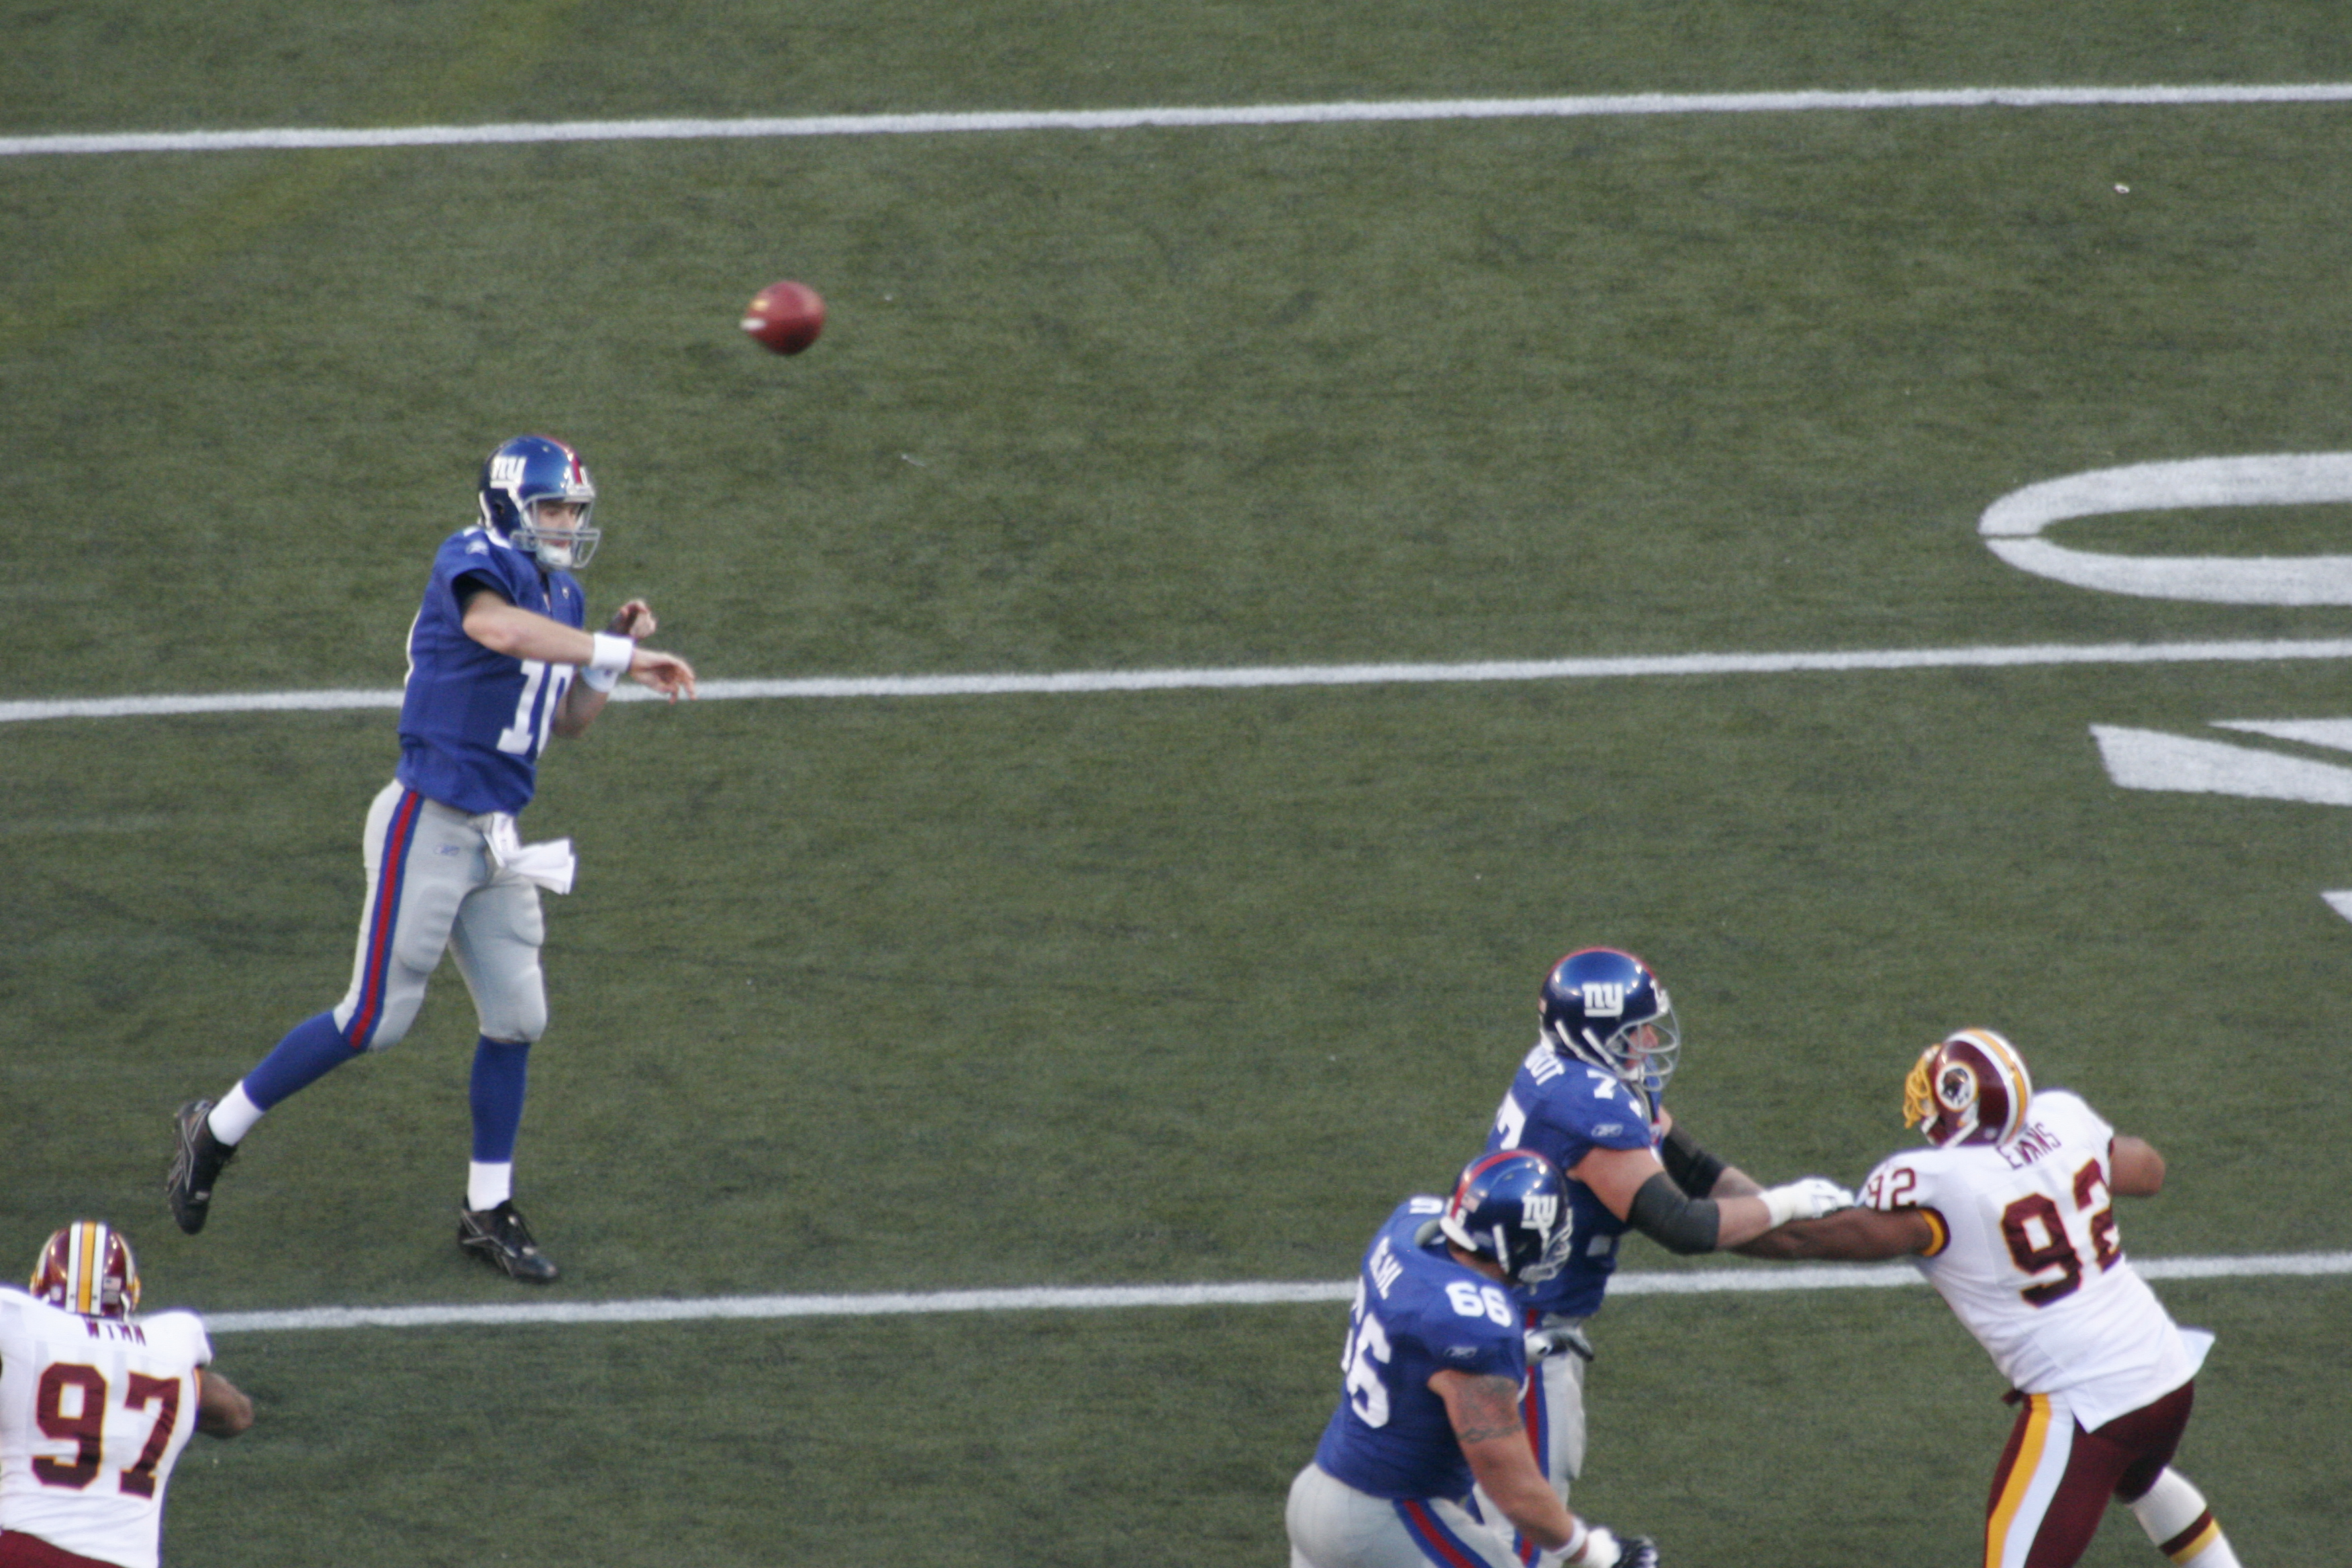 knowing manning he threw it to the press o giants relyea blair